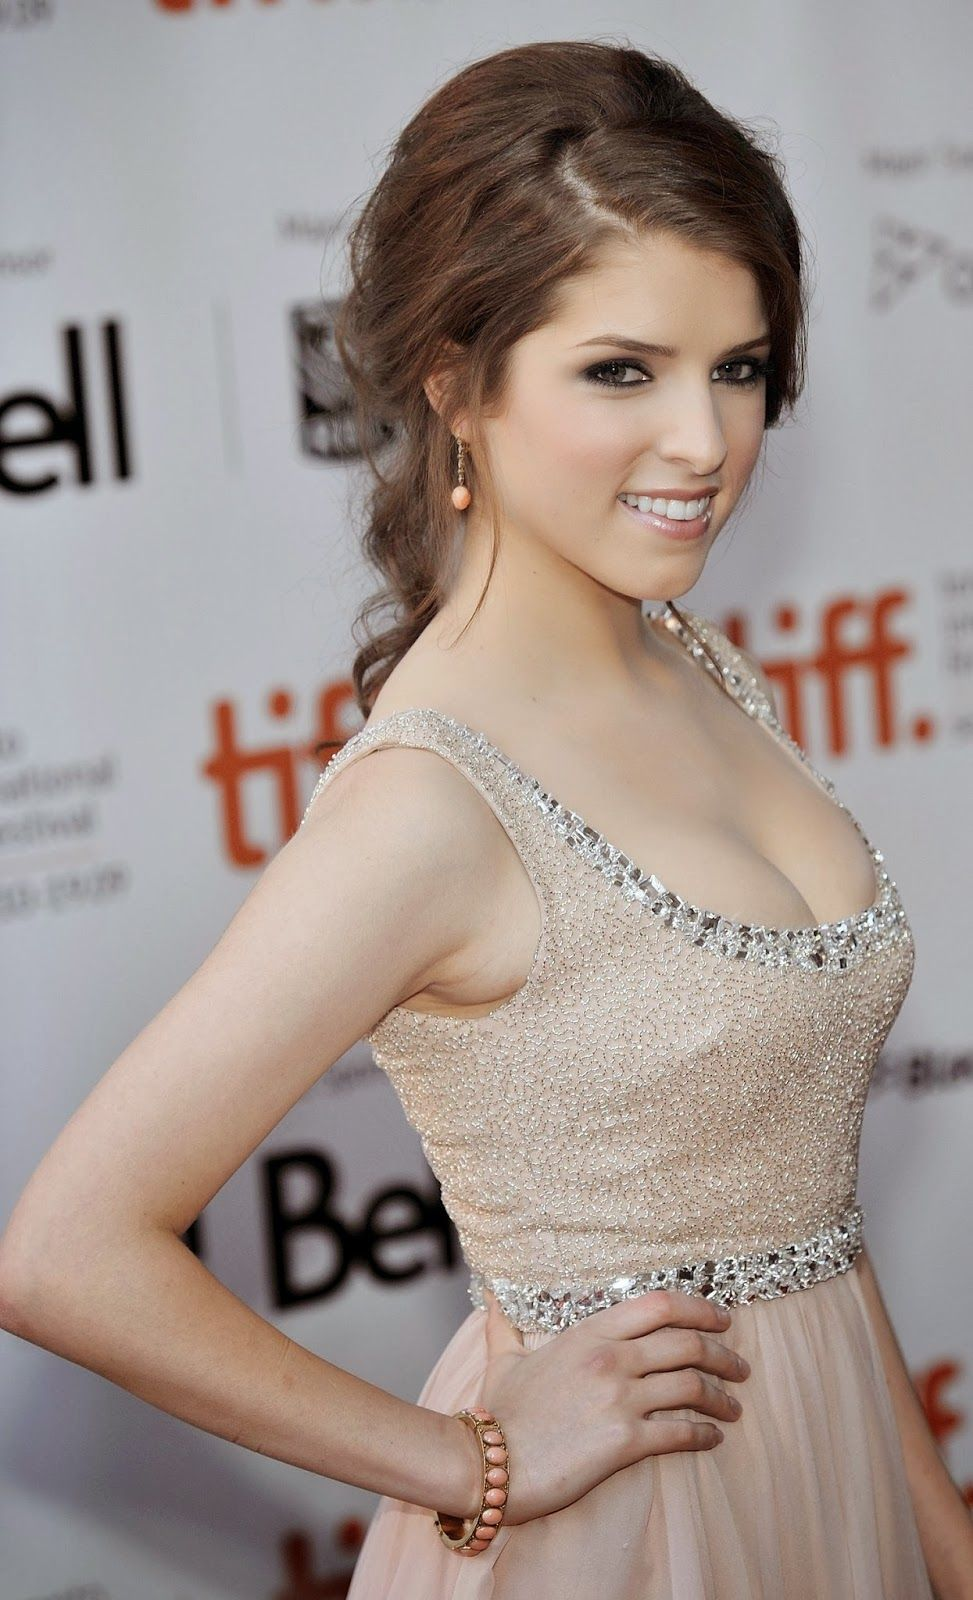 Anna Kendrick People I idmire stuff